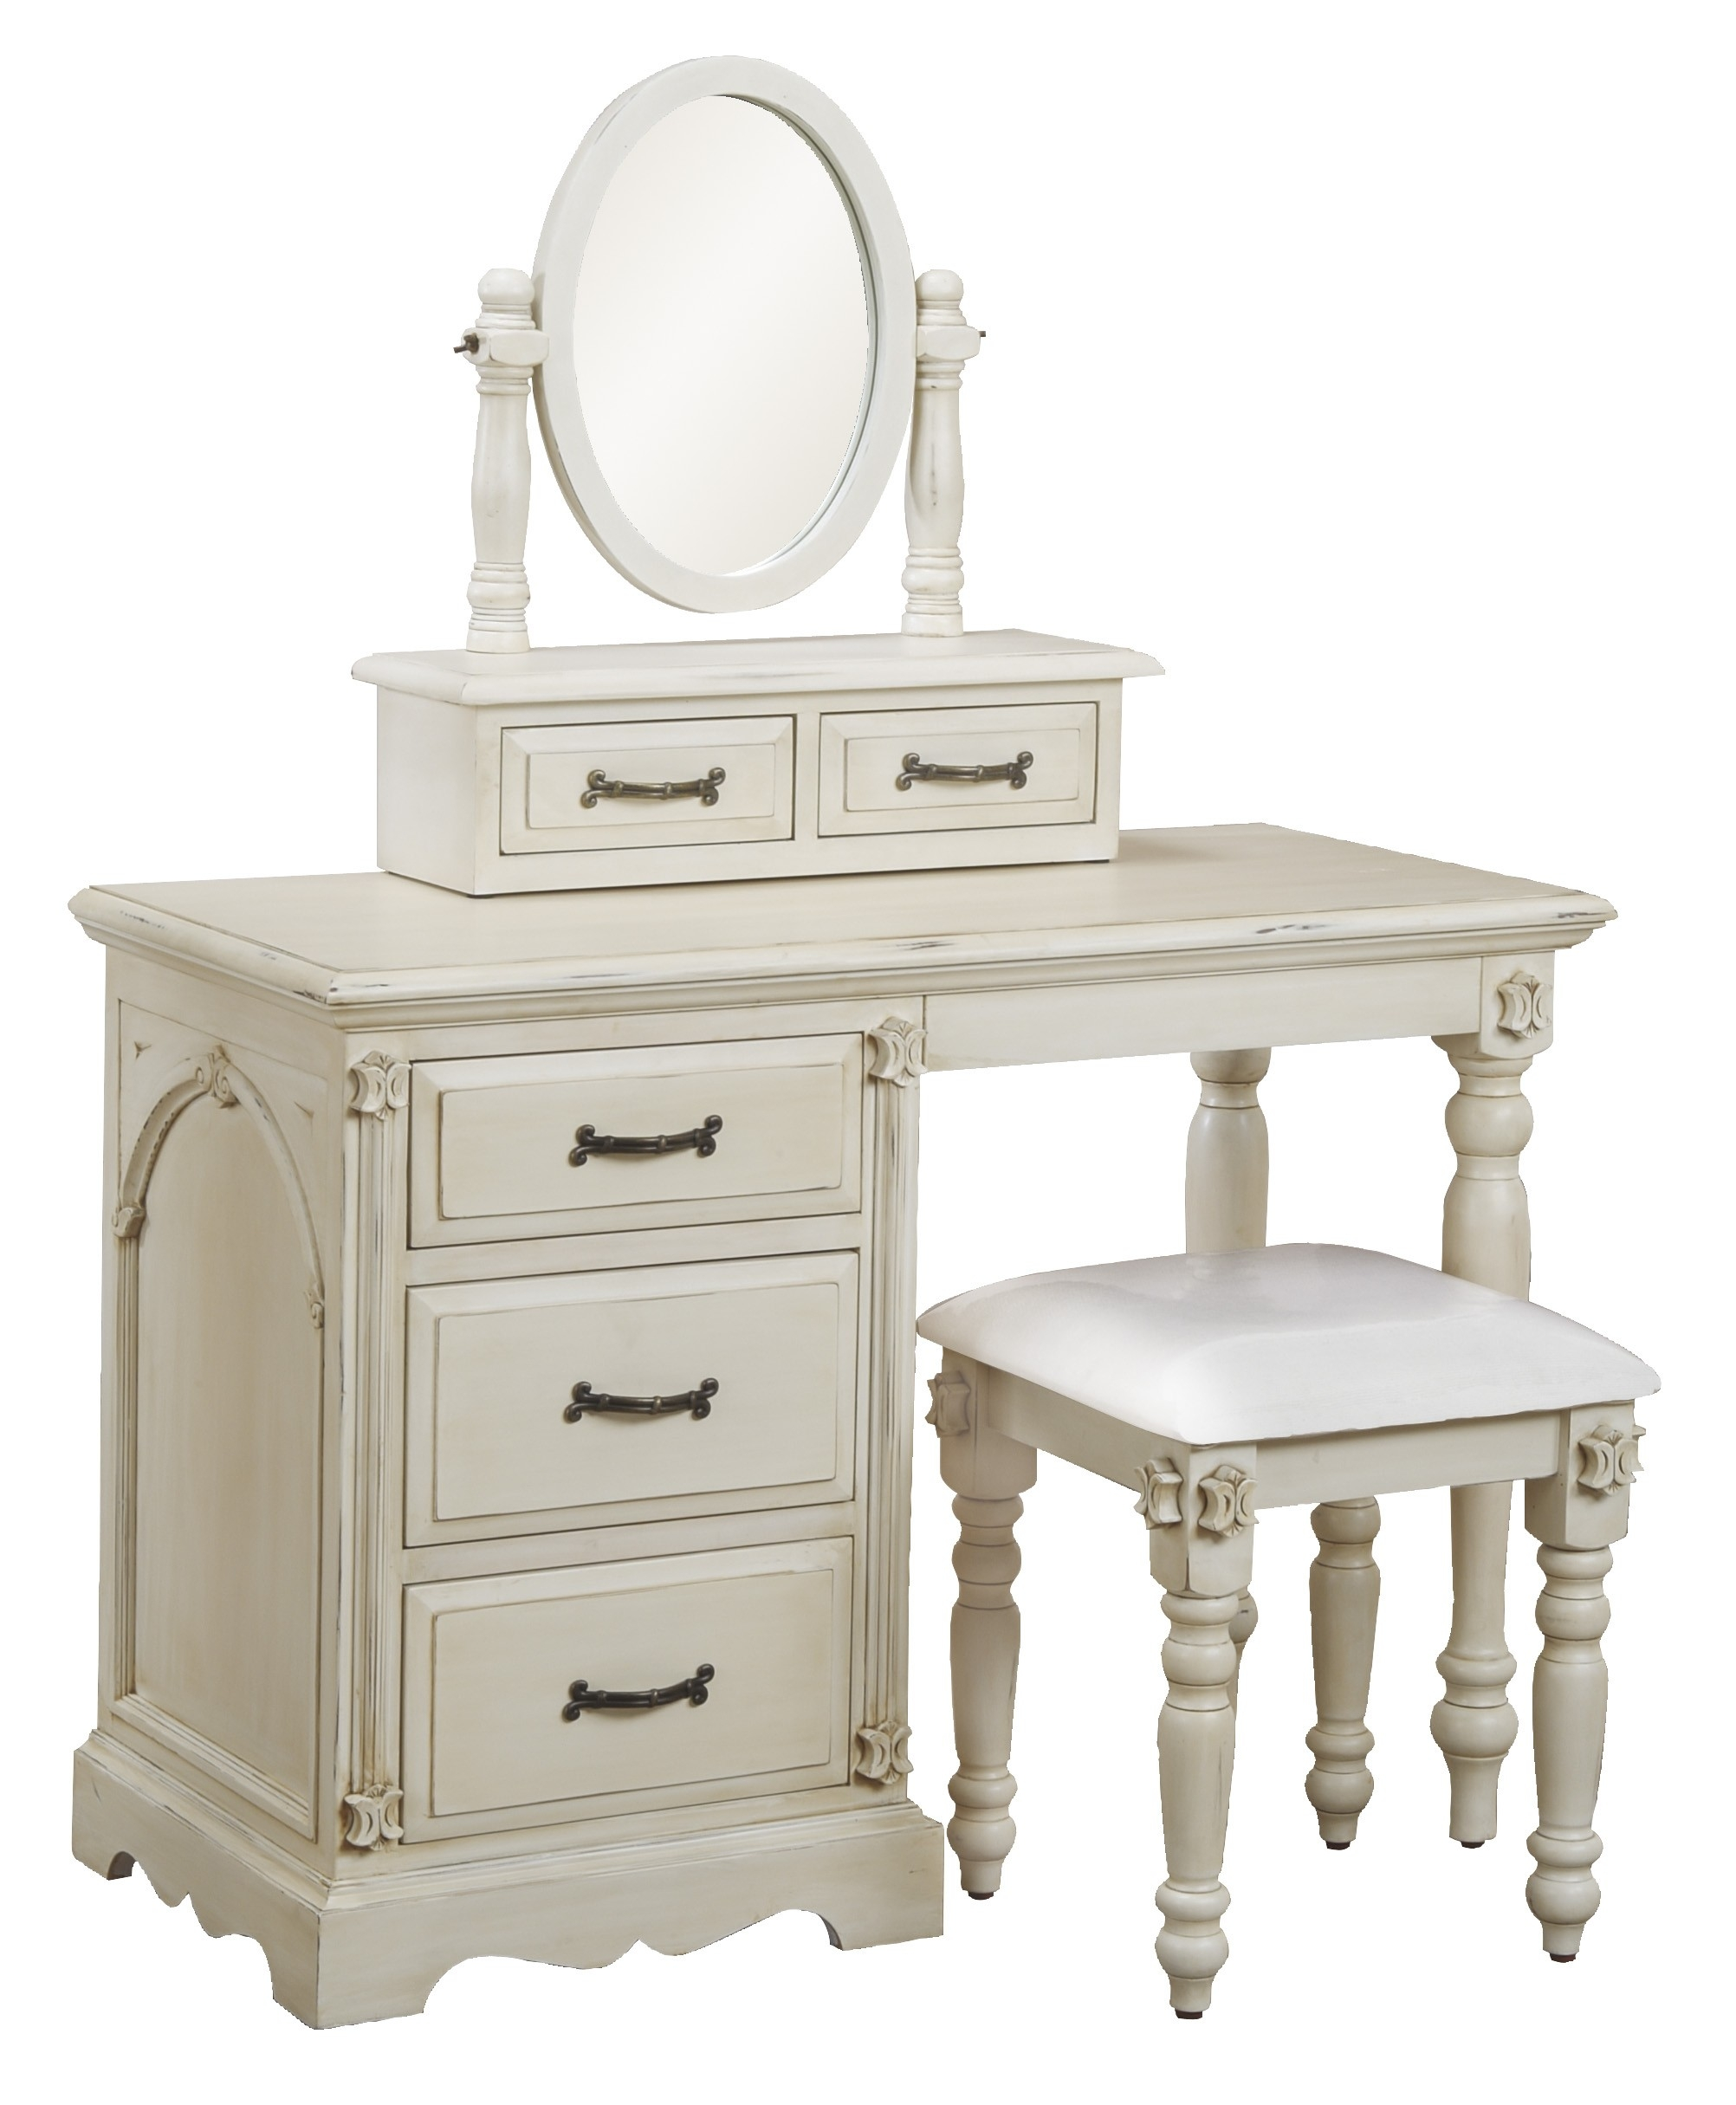 White Wooden Vanity With Drawers And Small Oval Mirror With White With Regard To Antique Small Mirrors (Image 15 of 15)